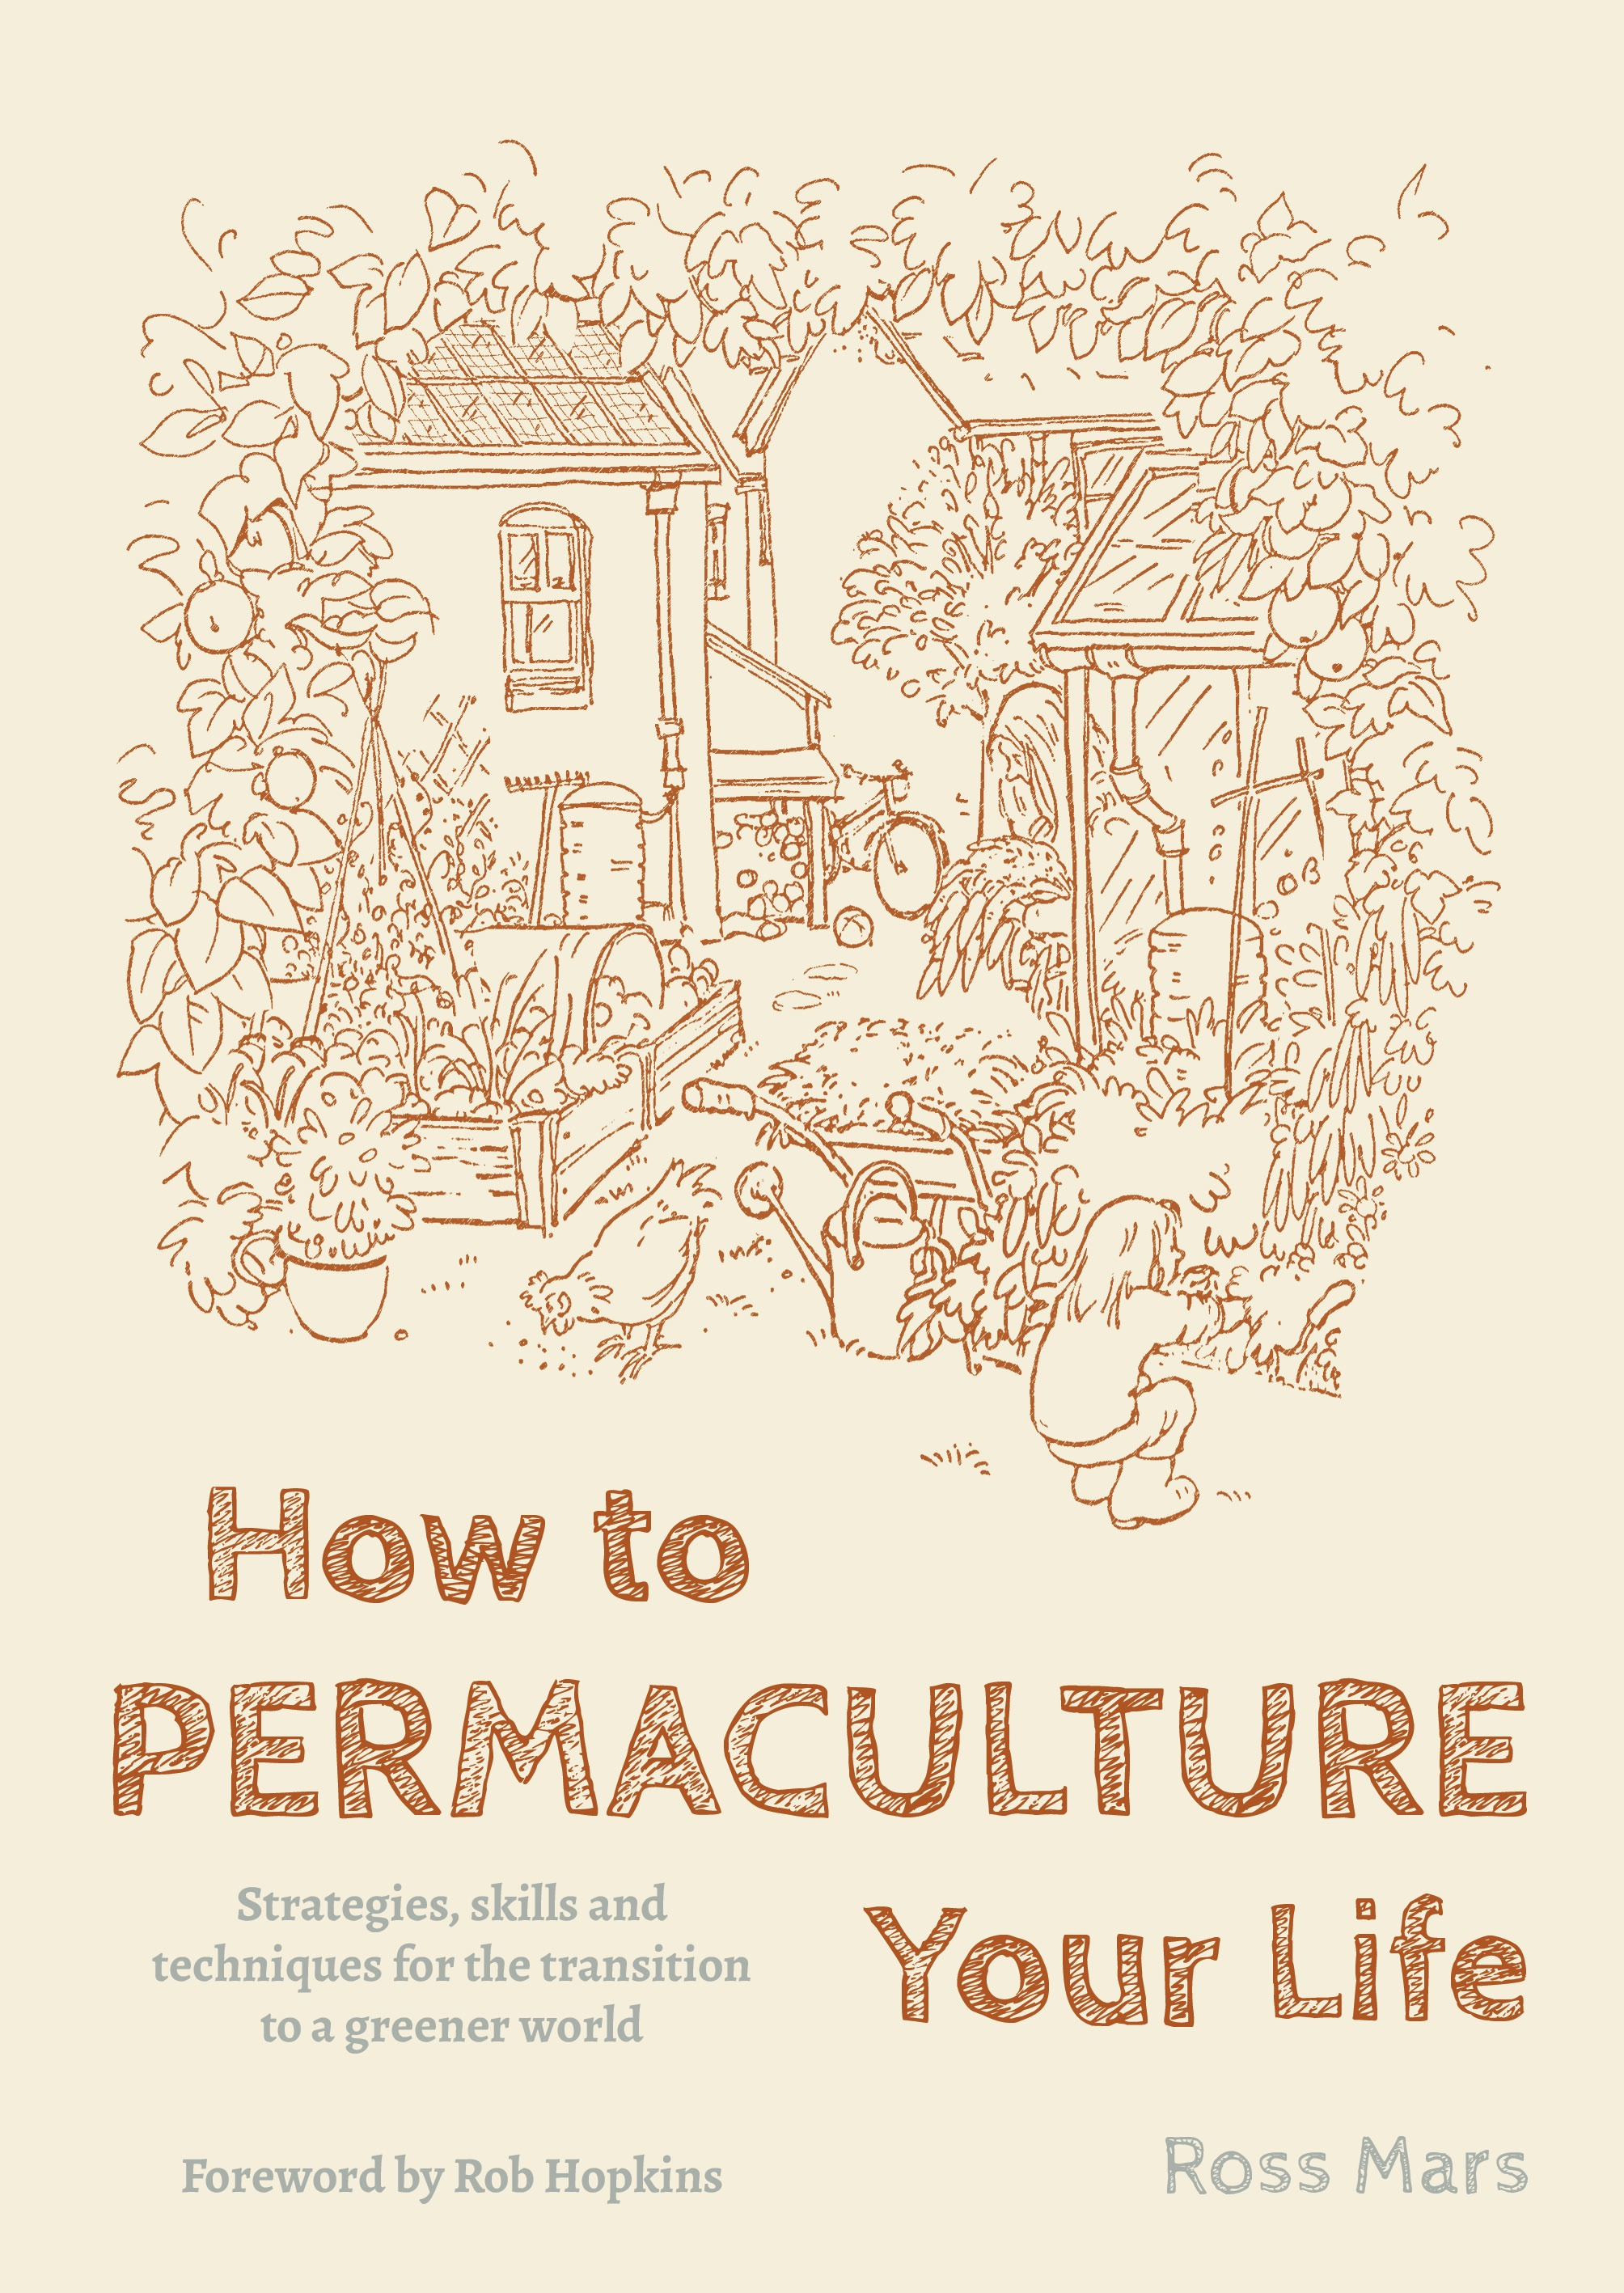 How to Permaculture Your Life: Strategies, Skills and Techniques for the Transition to a Greener World by Ross Mars